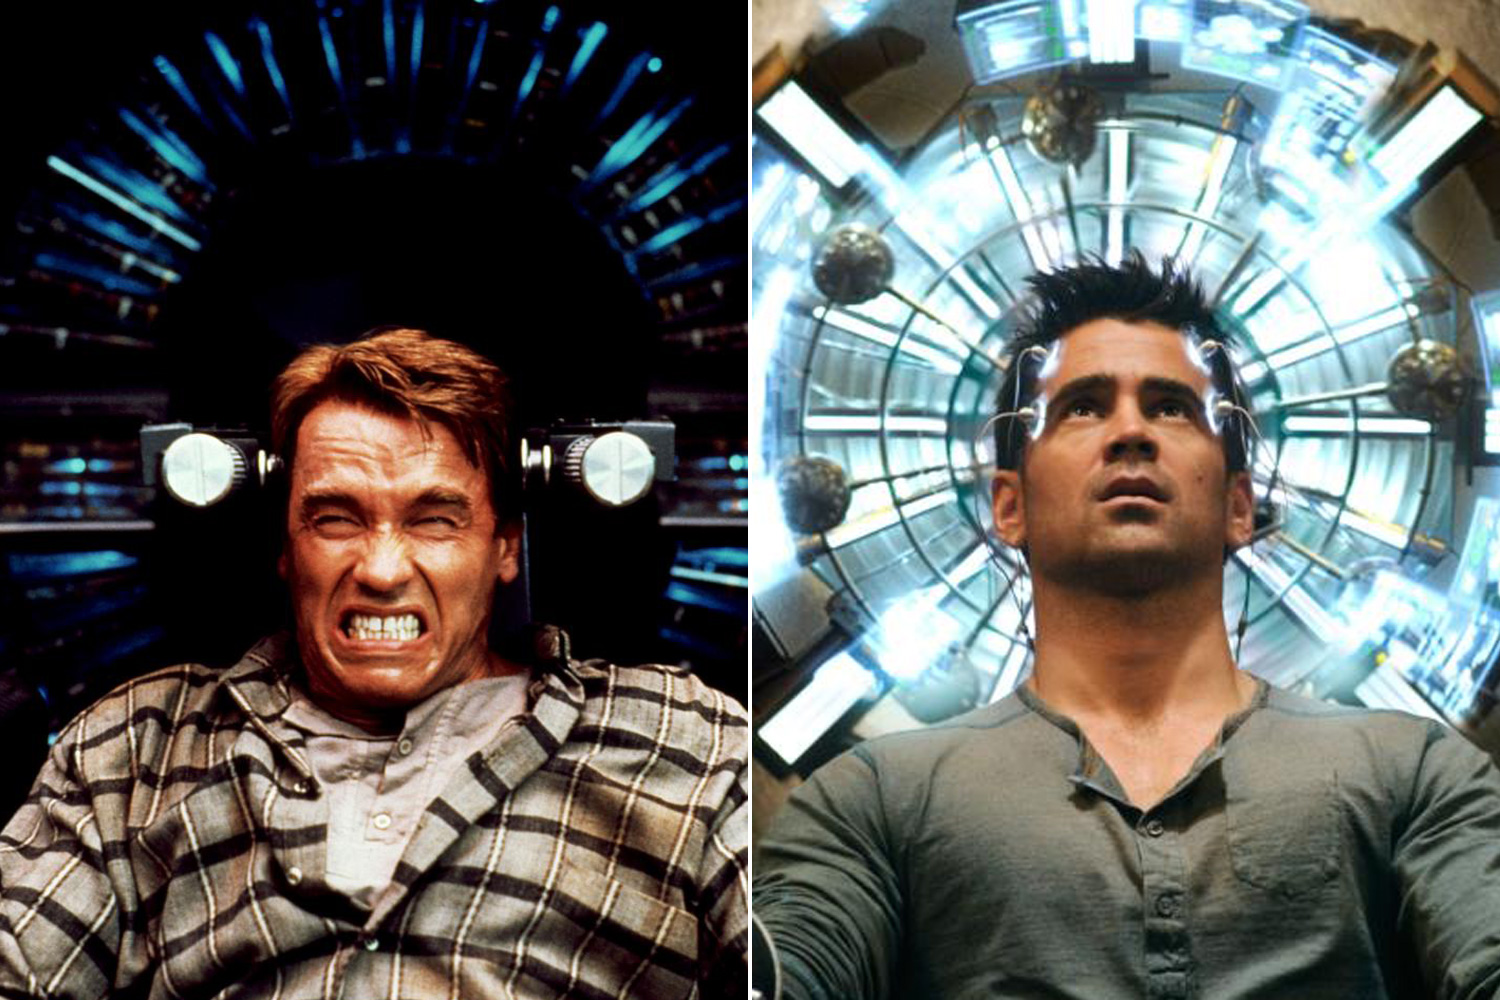 Arnold Schwarzenegger starred in the orignal 1990 sci-fi film <i>Total Recall</i>, while Colin Farrell played his counterpart in the 2012 reboot of the film.